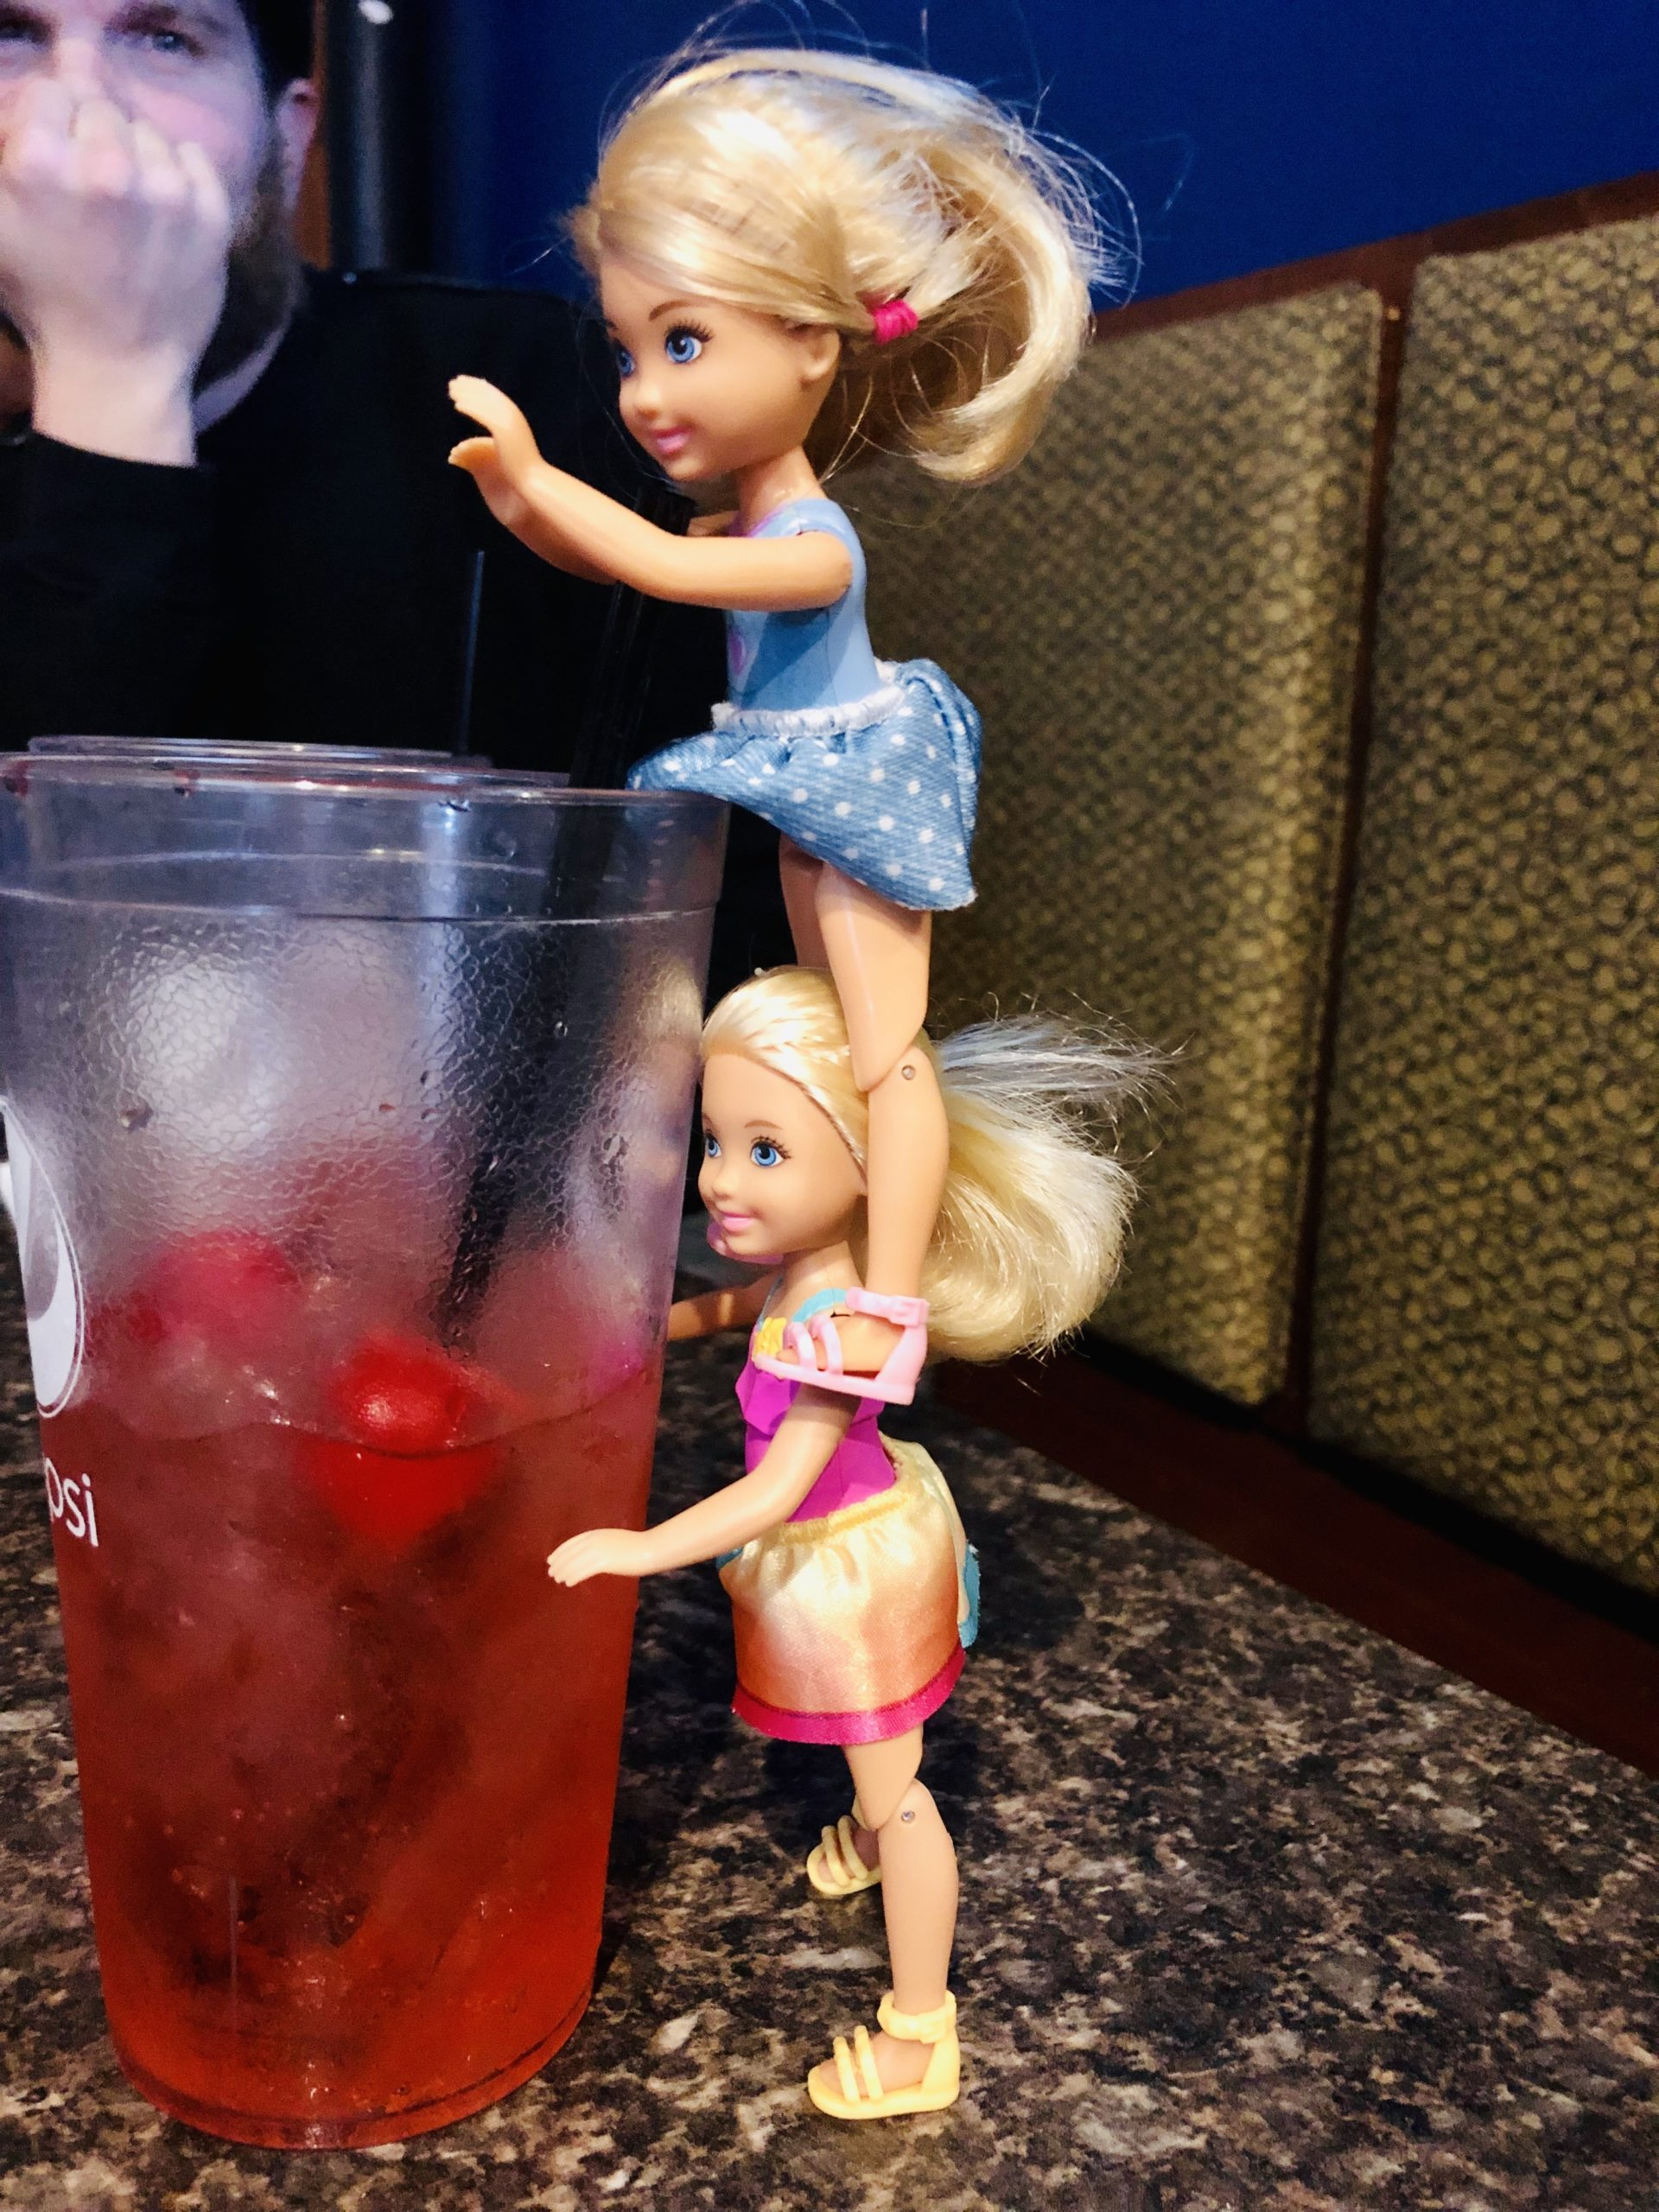 A Chelsea Doll Brynn, blue dress, is standing on another Chelsea doll's (Rowan) shoulders.